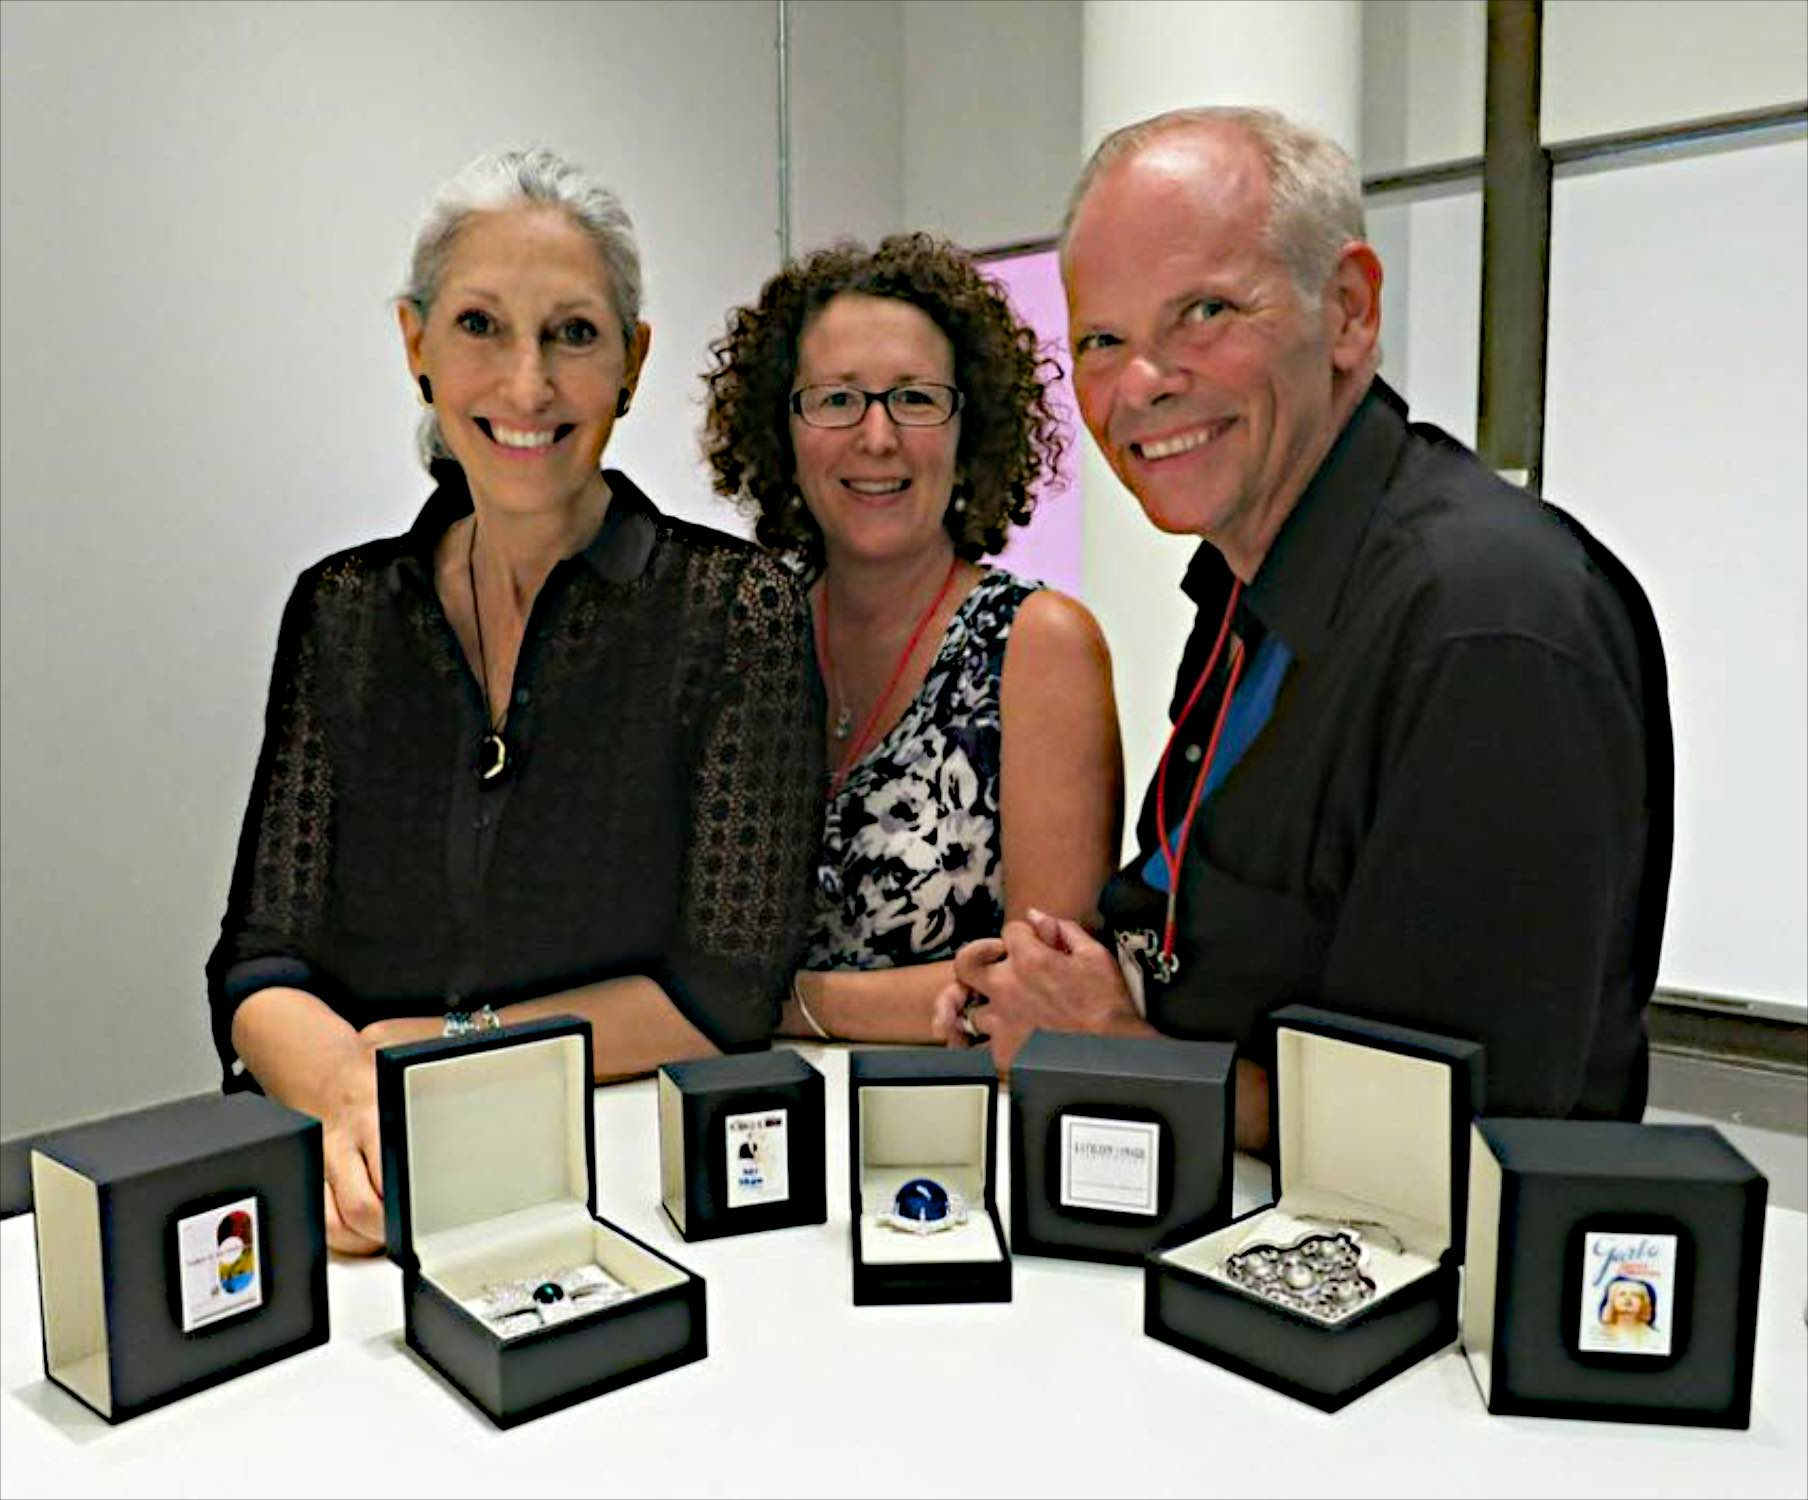 Jewelry presentation at the Academy Museum of Motion Pictures, Deborah Nadoolman Landis, Kathleen Lynagh House and Larry McQueen